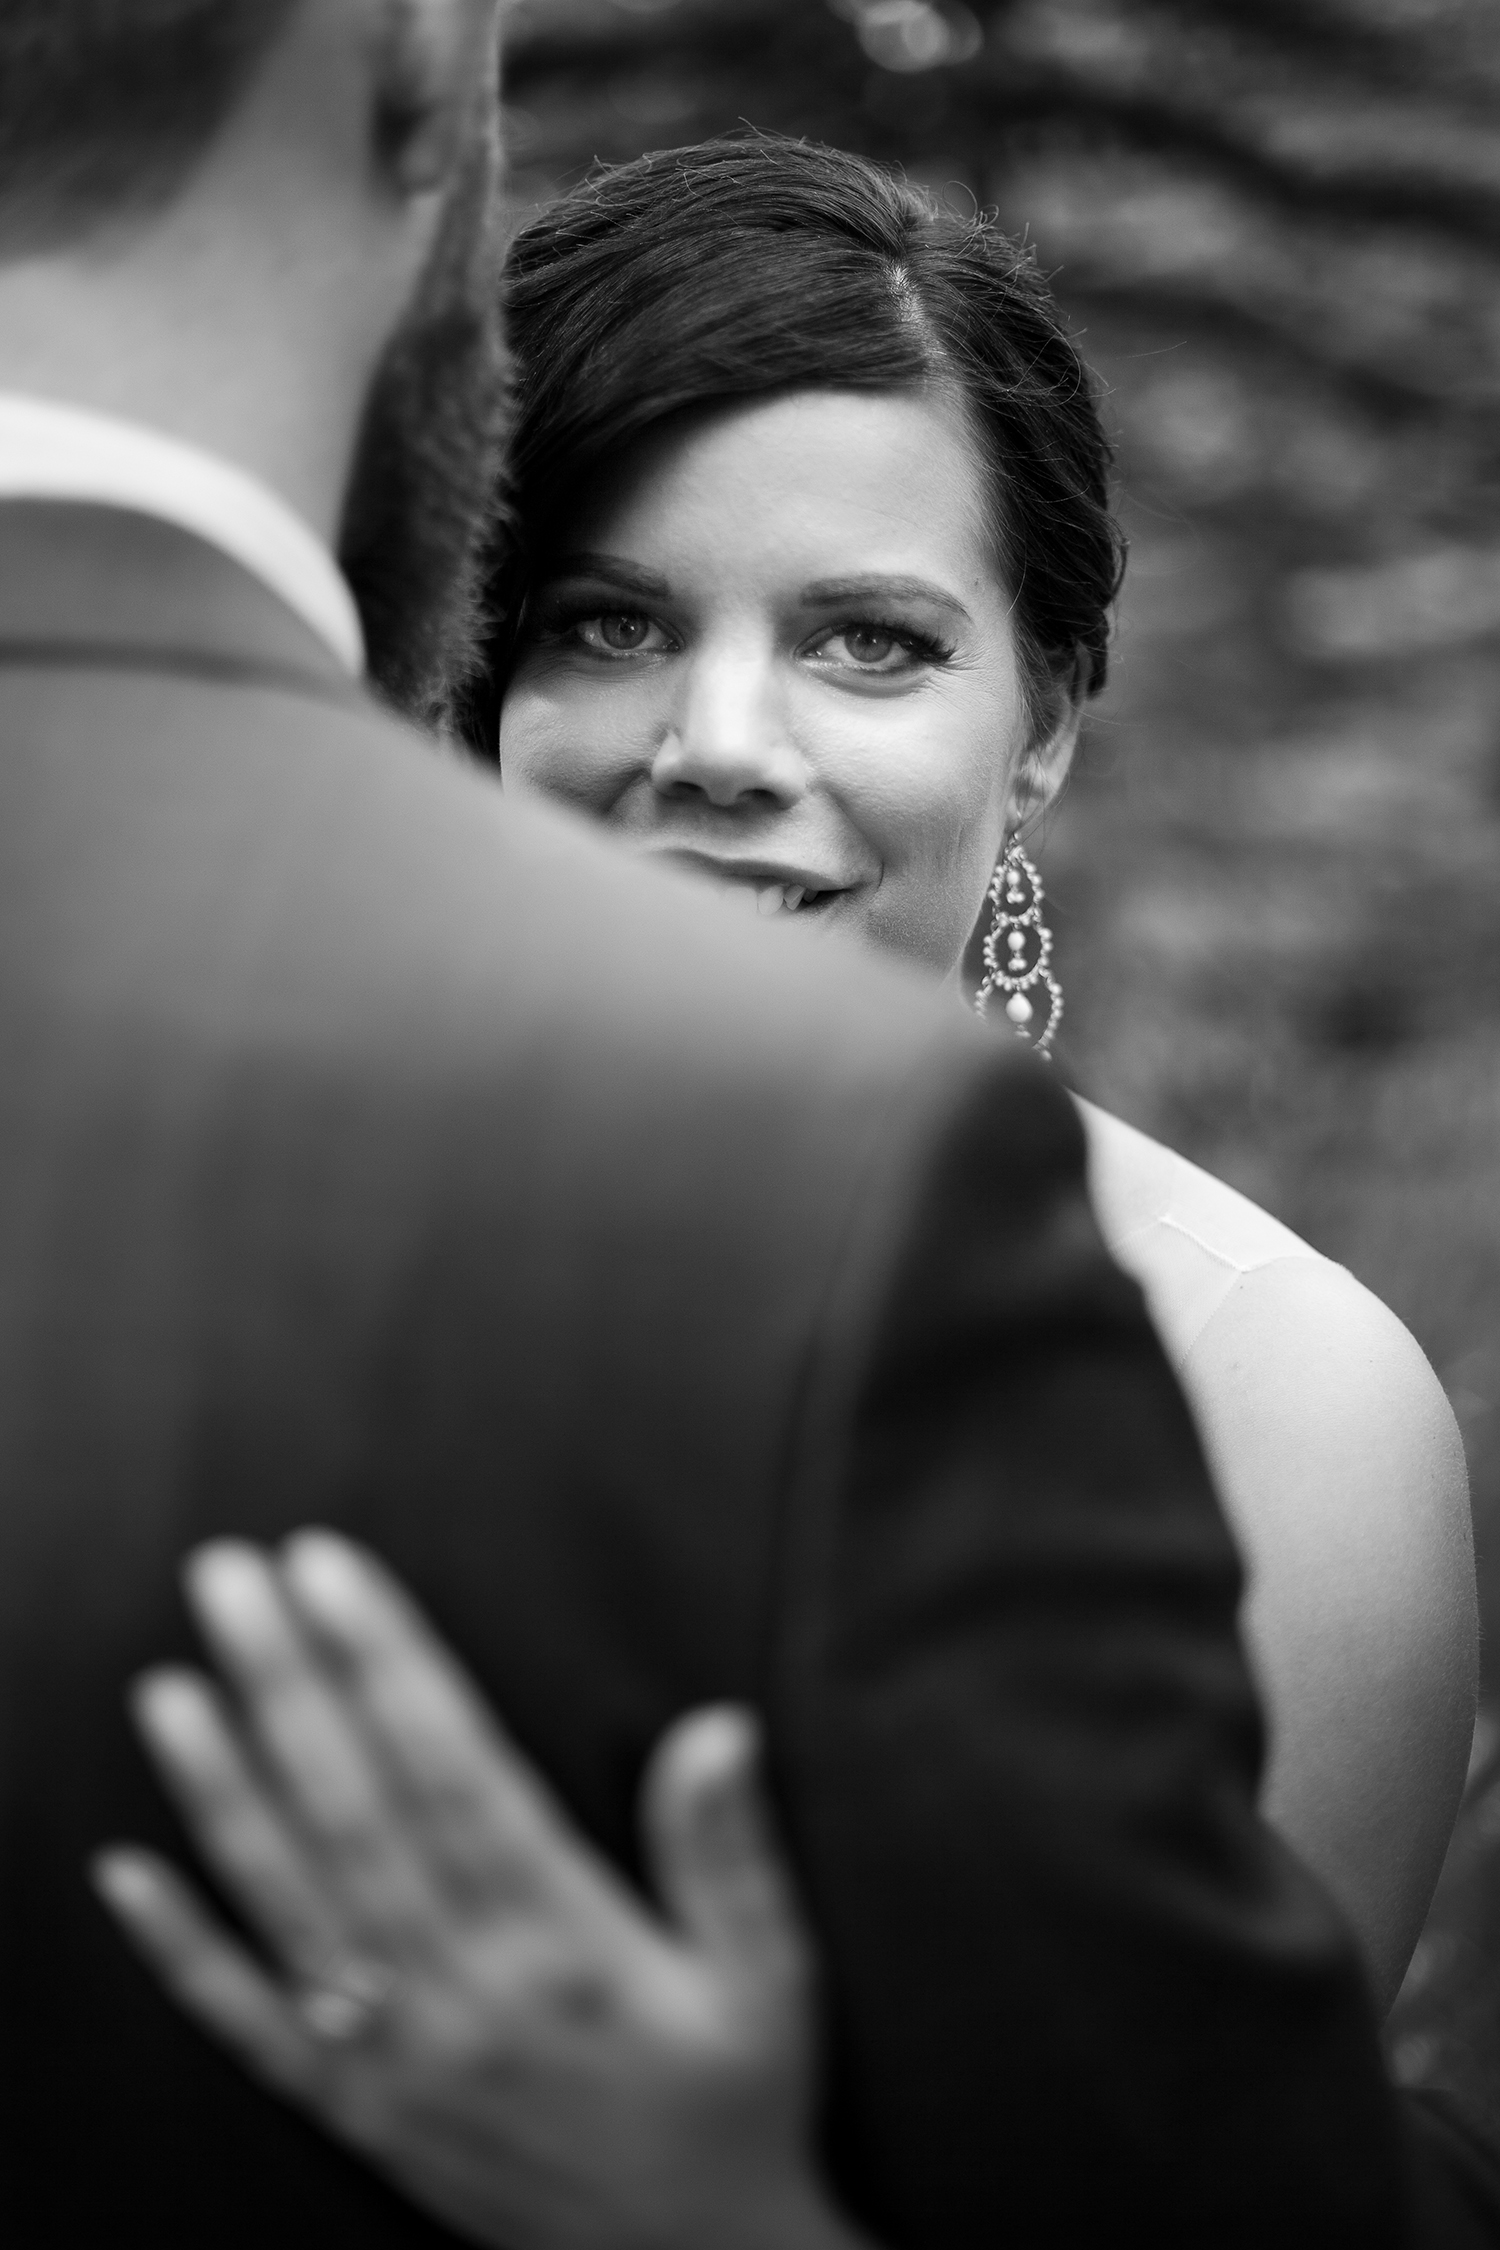 tanya-mark-wedding-260.jpg